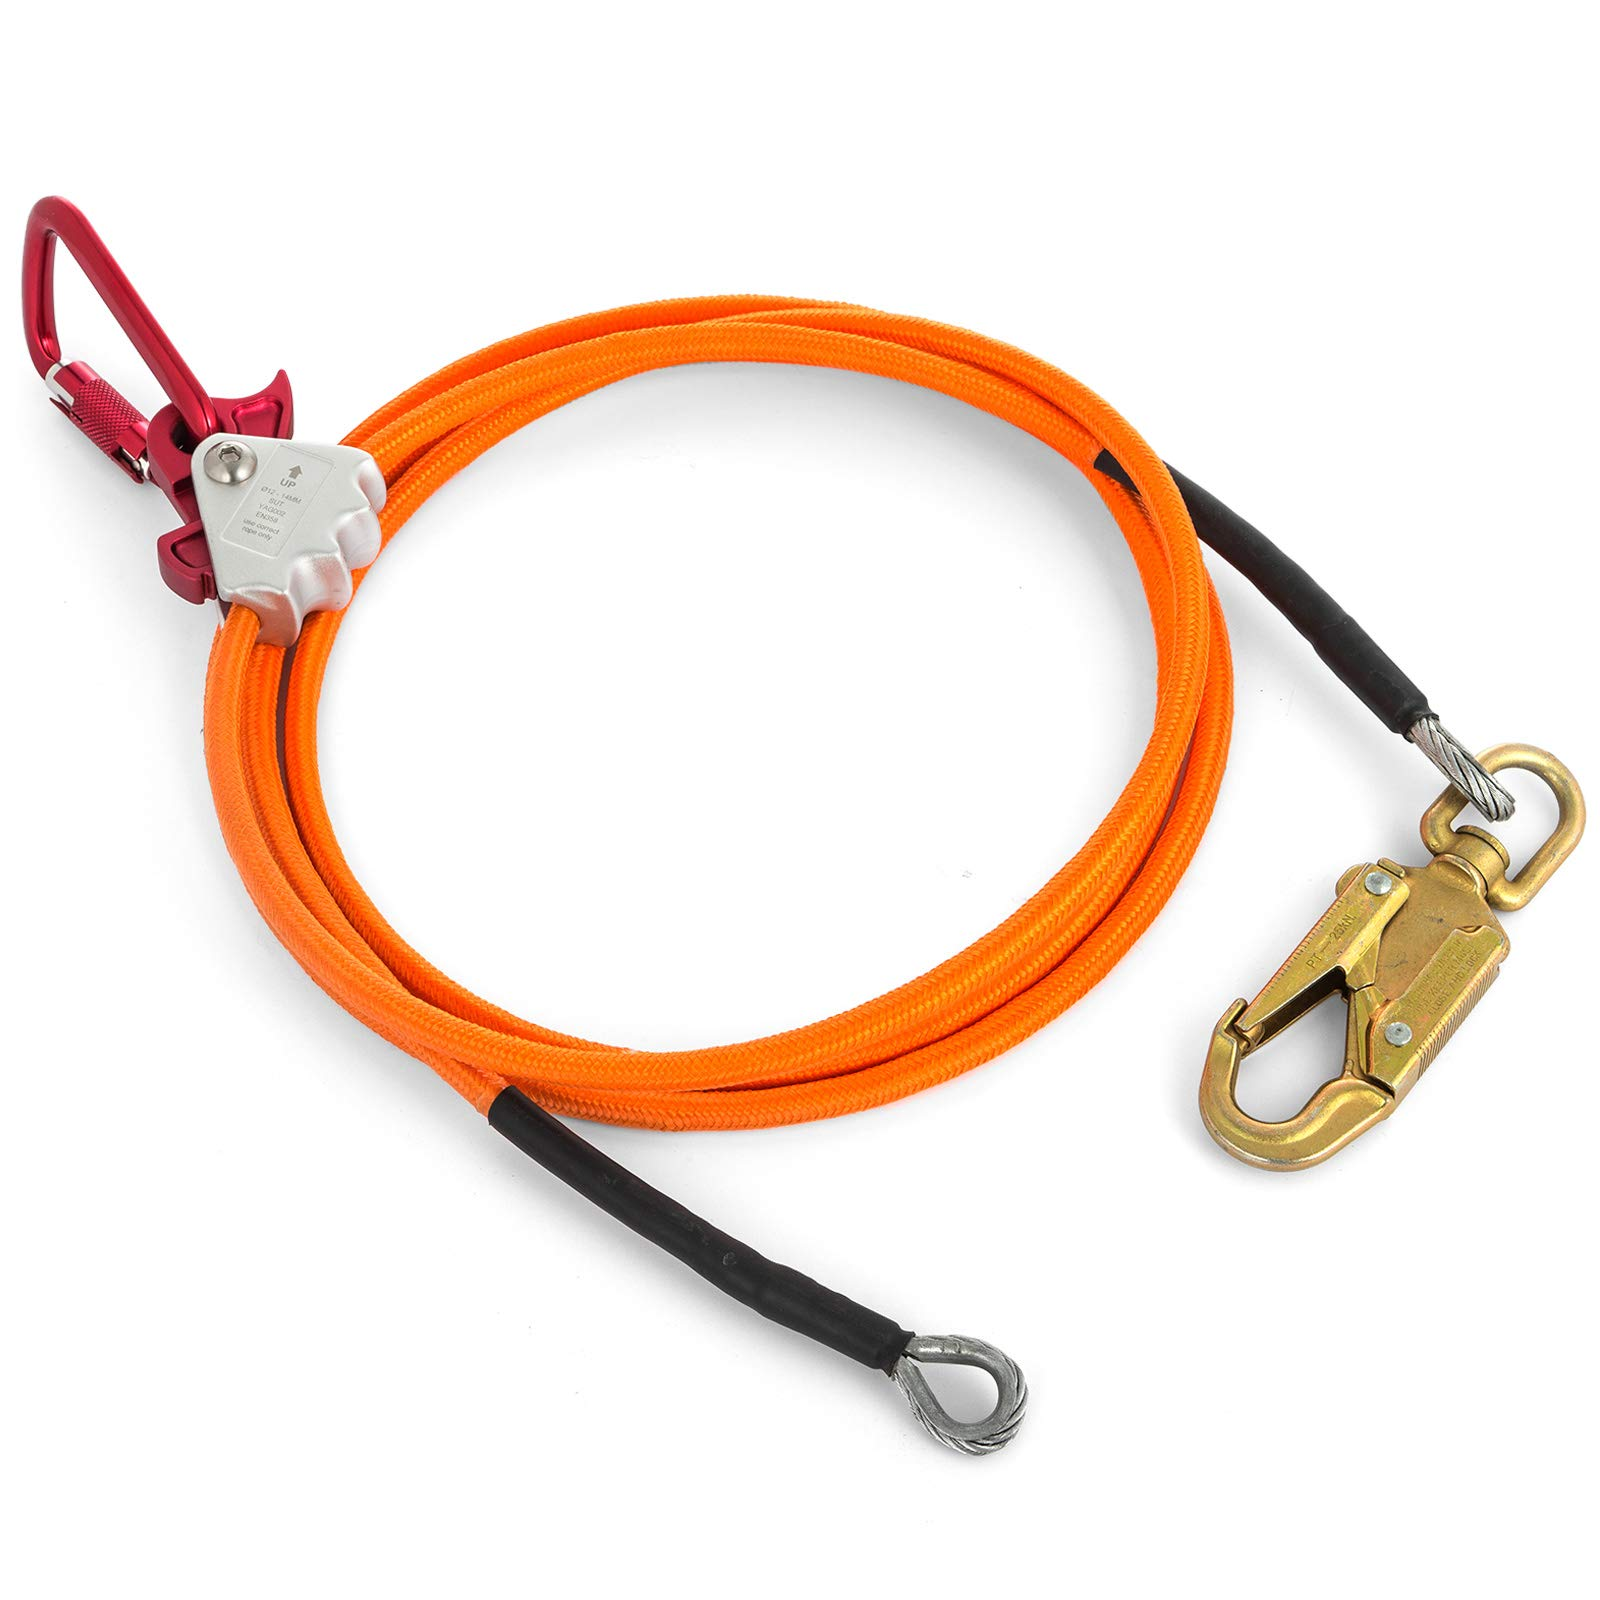 Happybuy Steel Wire Core Flip Line Kit 1/2'' X 8' Wire Core Flipline with Triple Lock Carabiner and Steel Swivel Snap Wire Core Flipline System for Arborists Climbers Tree Climbers (1/2'' X 8') by Happybuy (Image #3)